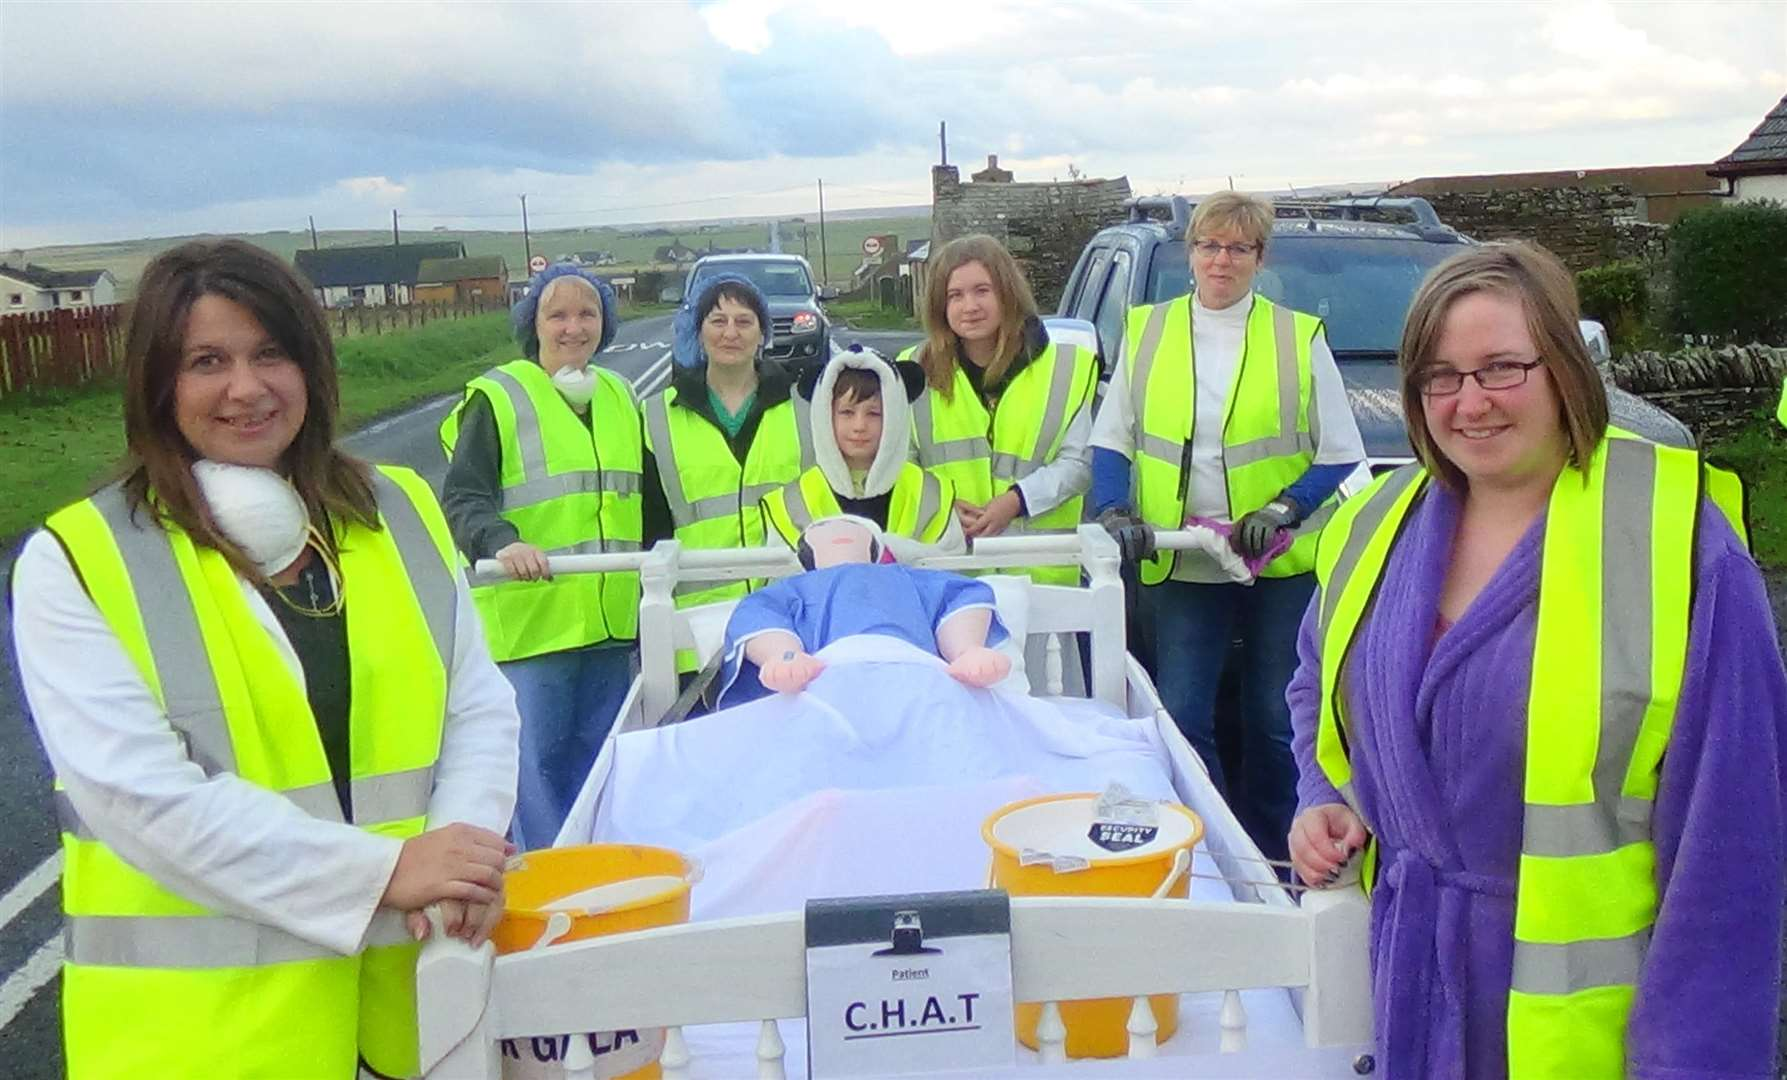 Miriam Sutherland (back right) with the Carry on Caithness team. She said its vital health services in Caithness are maintained due to the county's ageing population. Photo: Will Clark